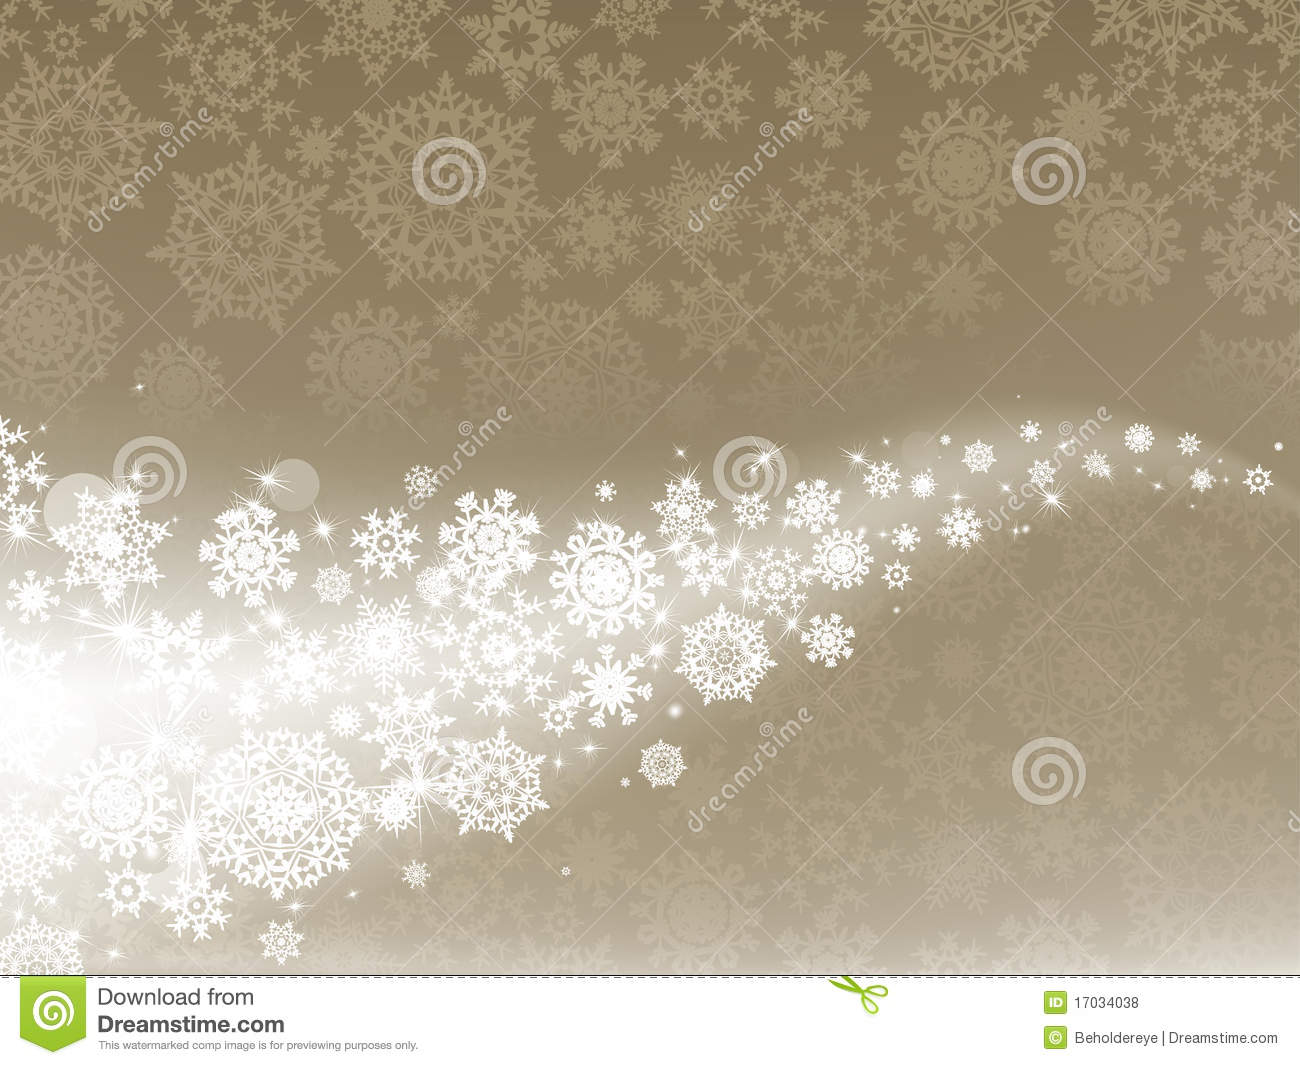 Elegant Christmas Background With Snowflakes Stock Vector: Light Elegant Abstract Christmas Background. EPS 8 Stock